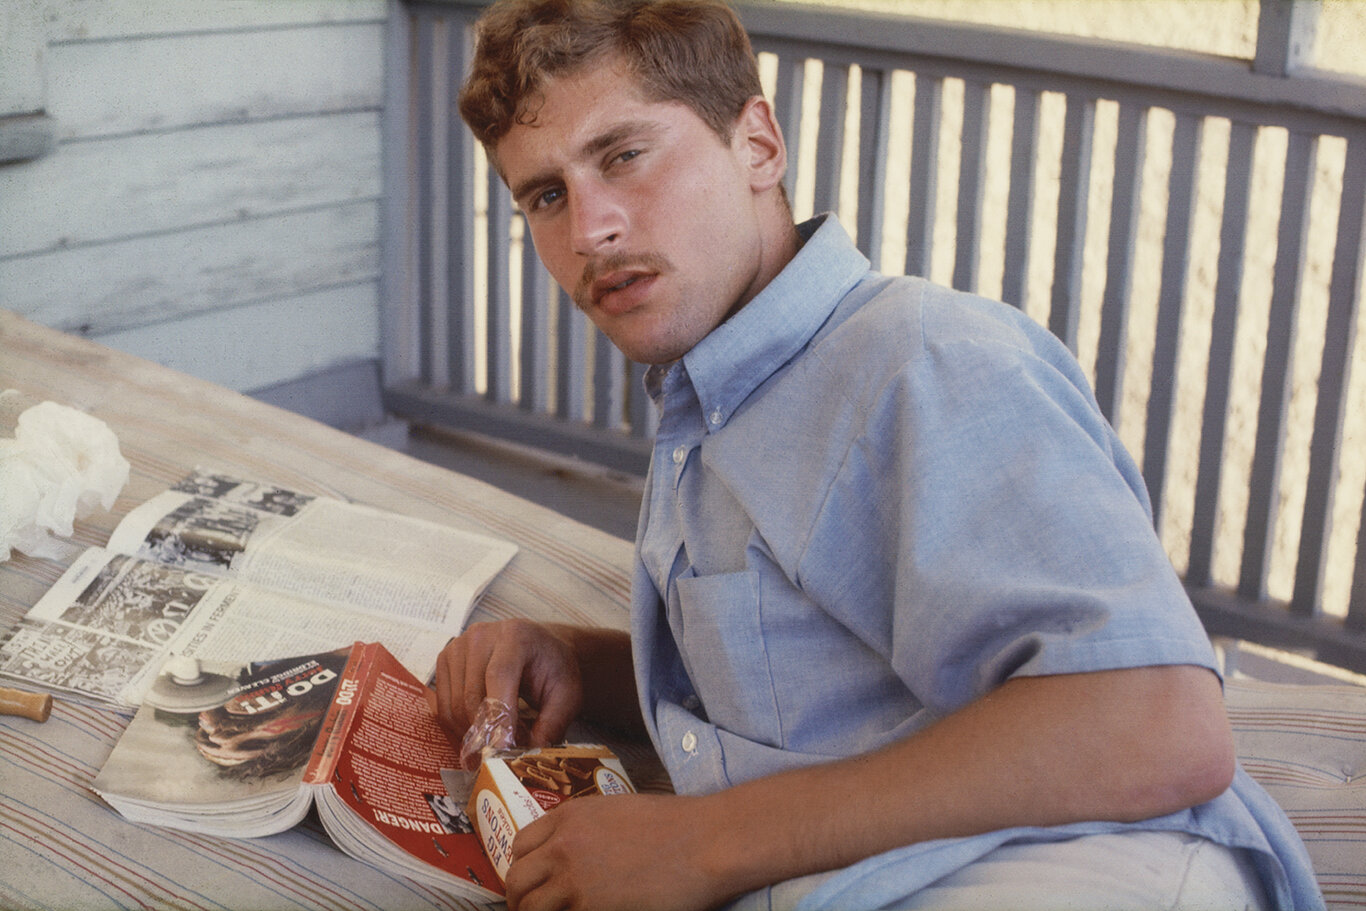 """Pfc. Robert S. Raphael, on leave, reading """"Do it!"""" on my Collegetown apartment balcony (1970)"""